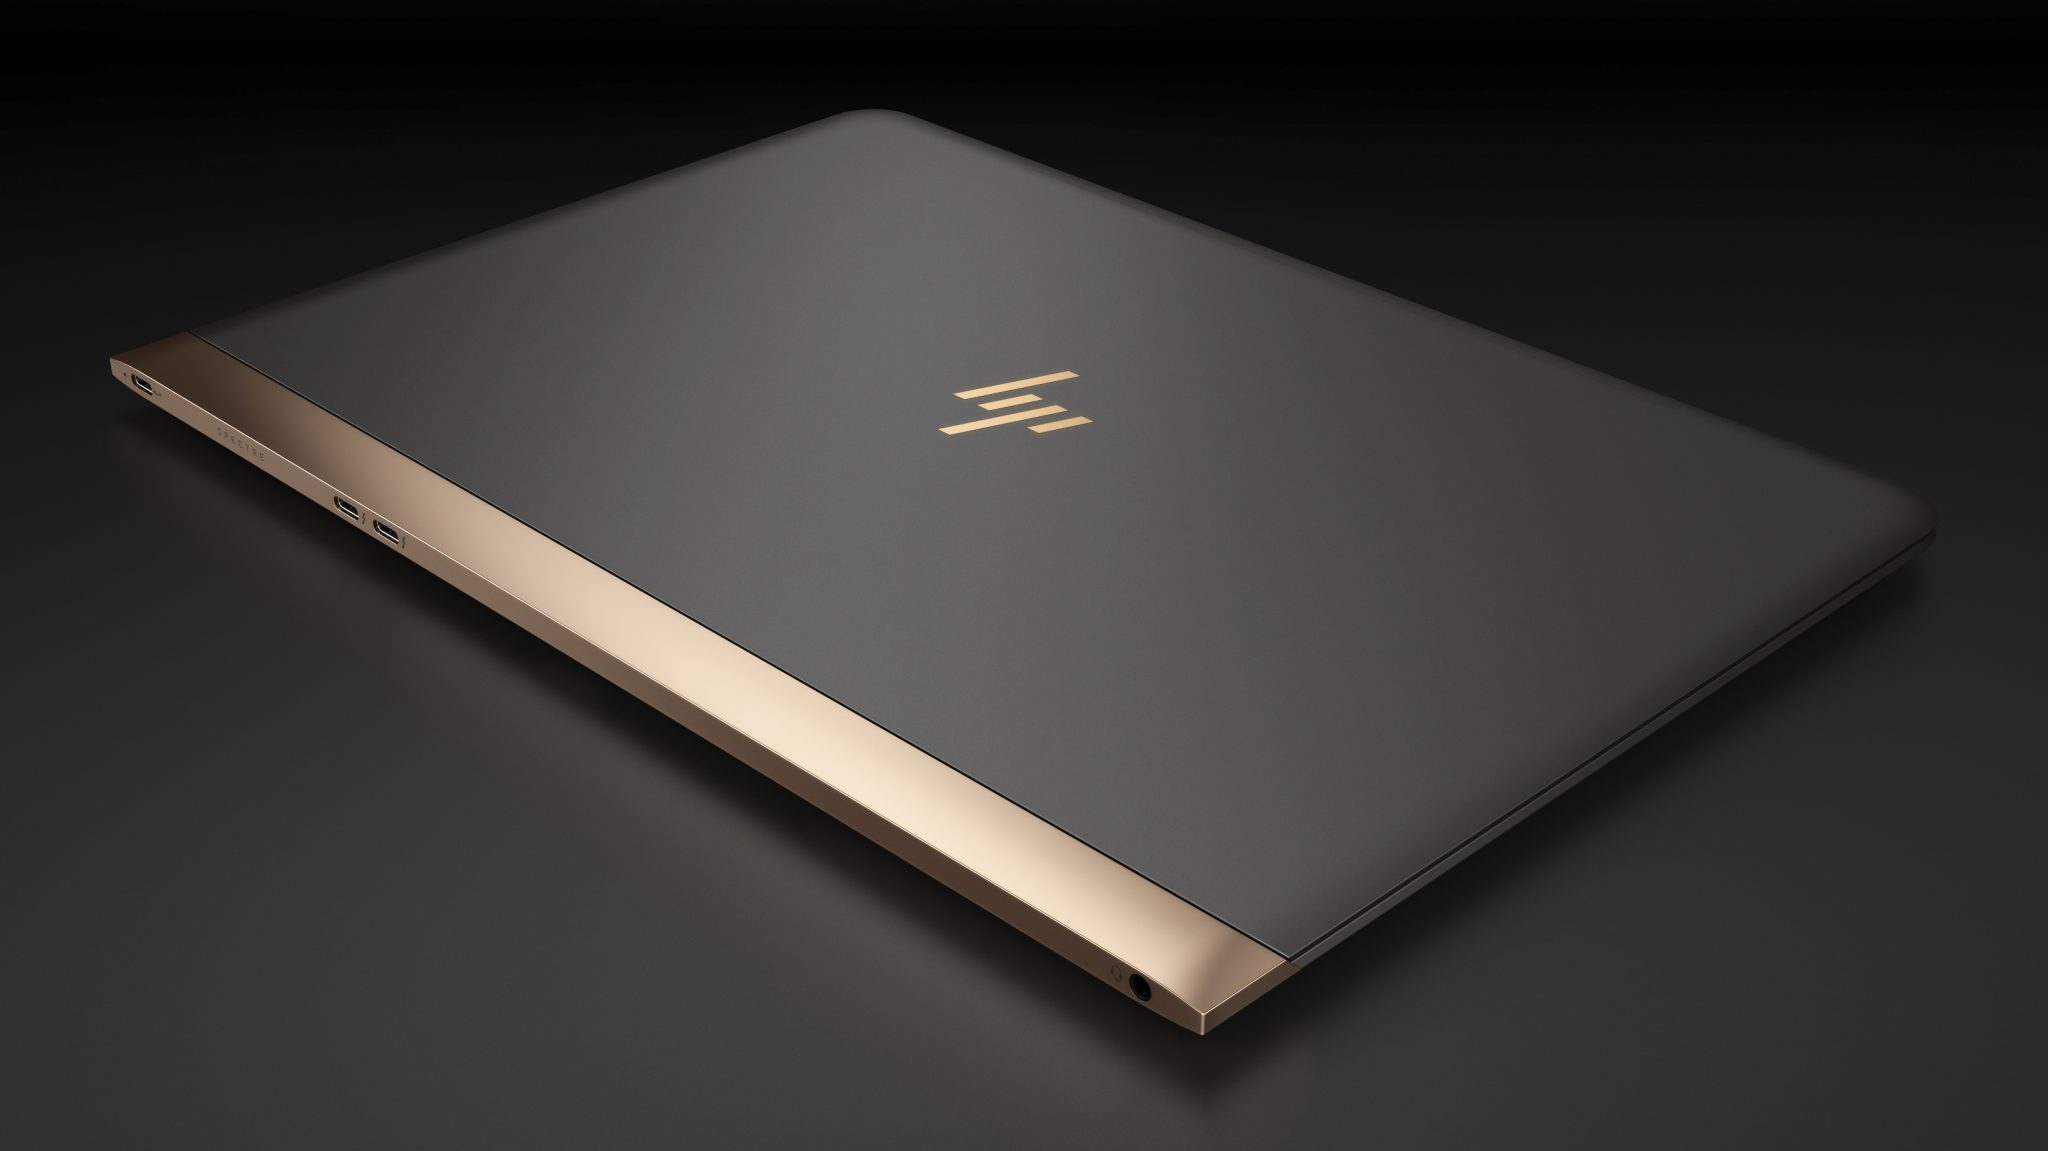 HP Spectre 13 Review: Surpassing Expectations Time After Time 31